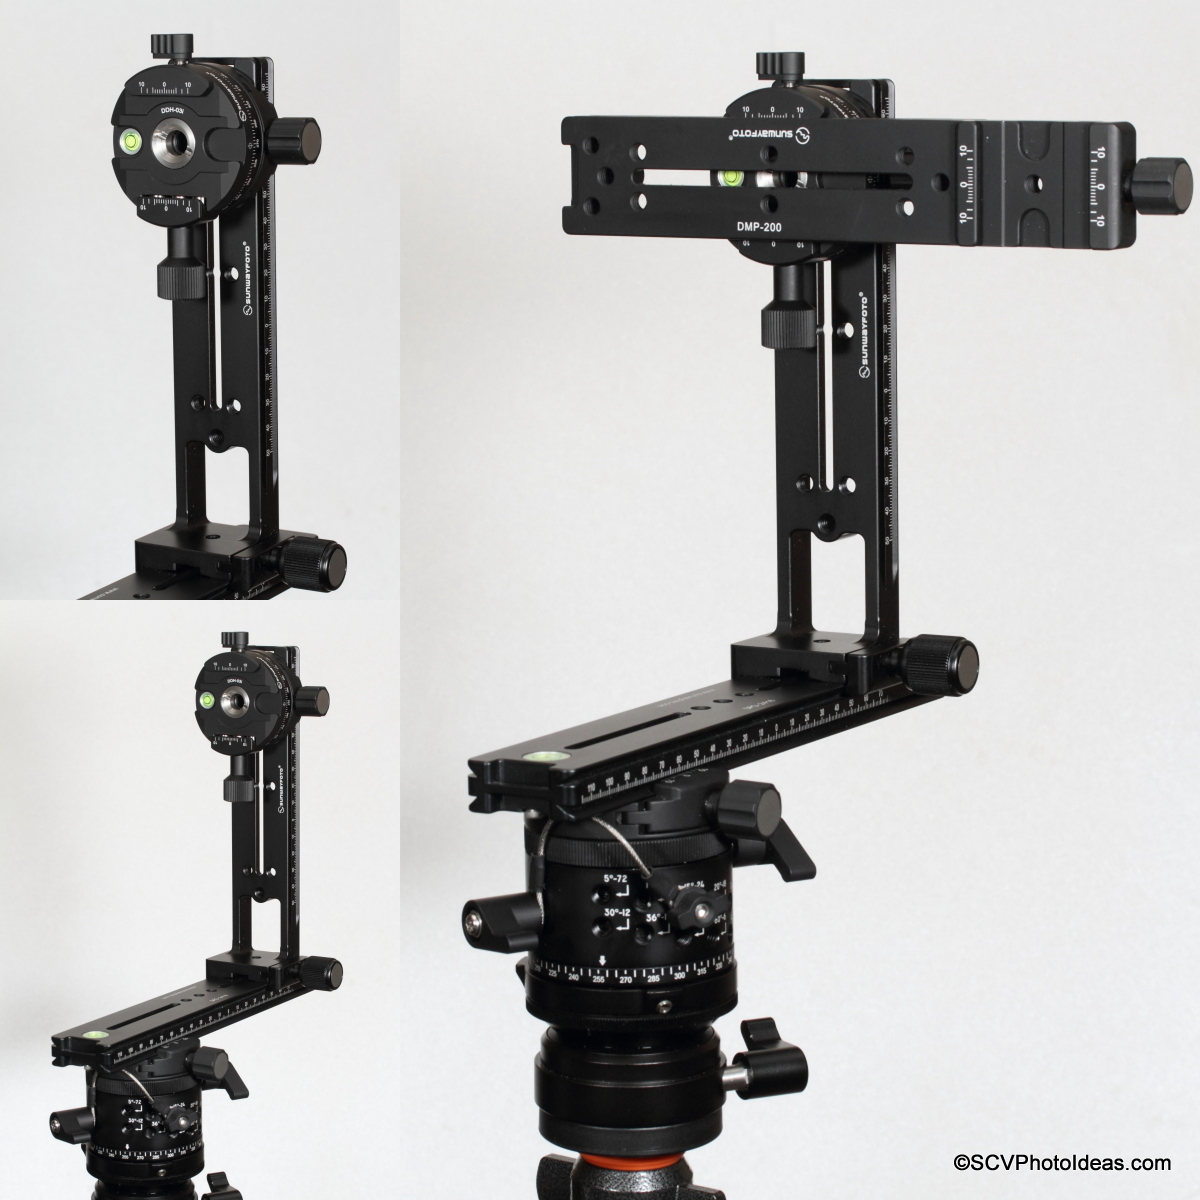 Sunwayfoto DDH-03i /2014 Panning Clamp on Sunwayfoto Pano-3 panoramic head